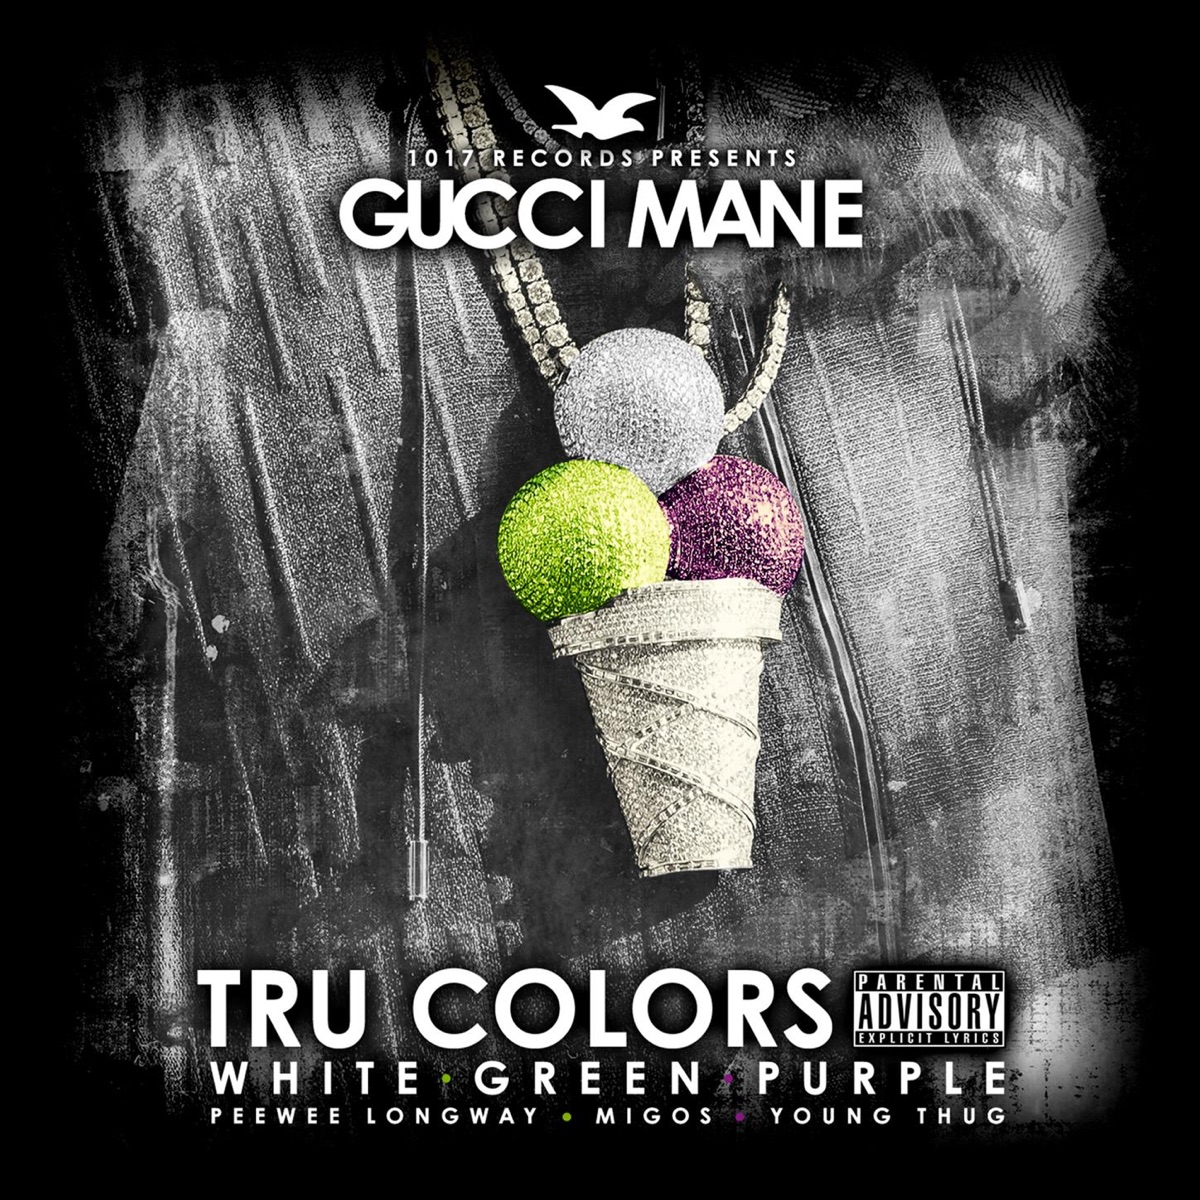 Tru Colors Gucci Mane Young Thug Peewee Longway  Migos CD cover